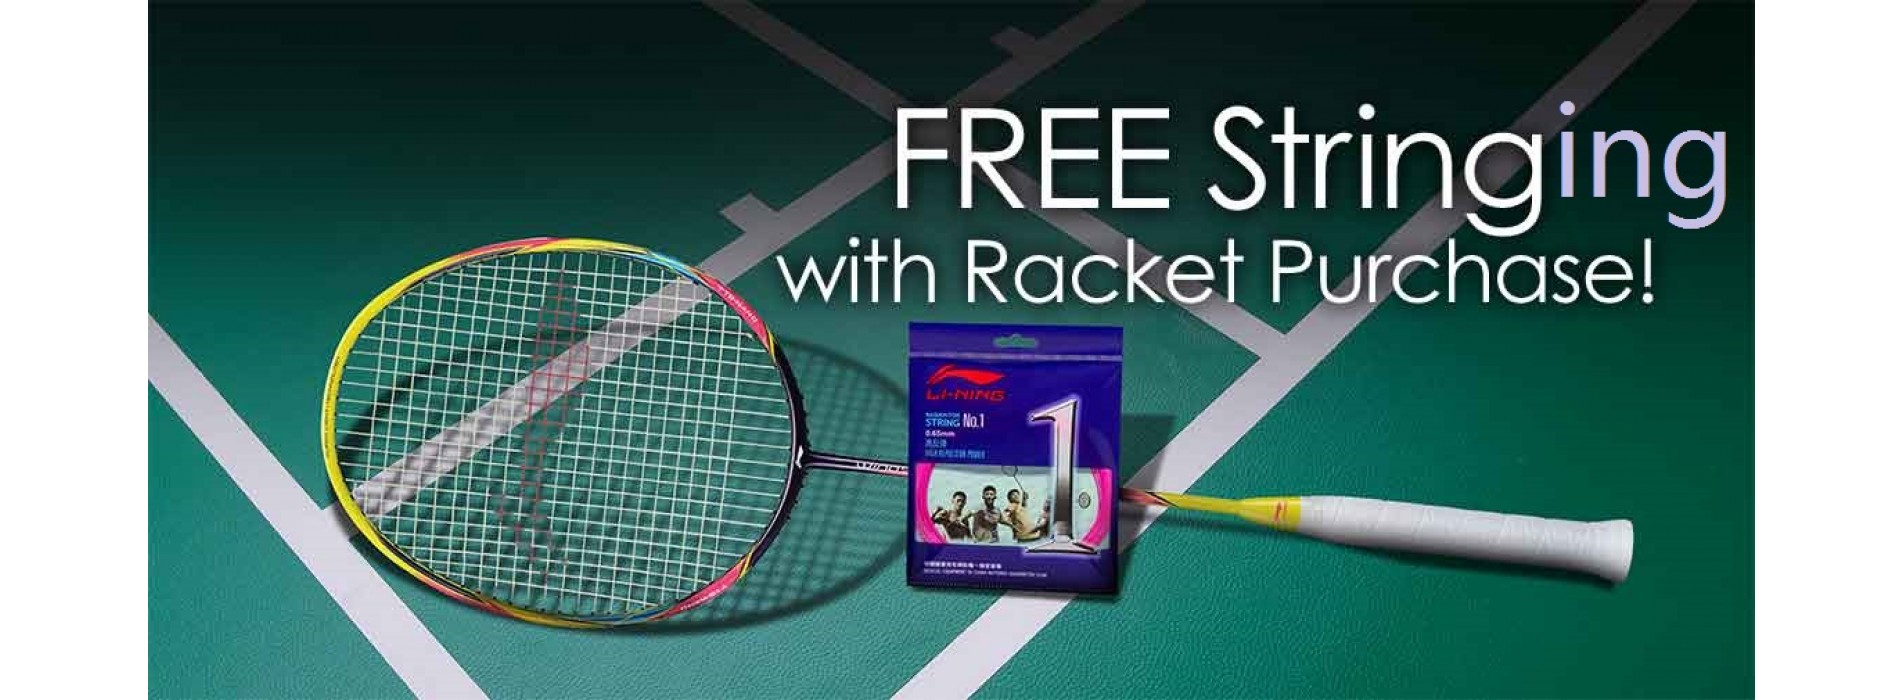 Free Stringing Service with all Lining Rackets!